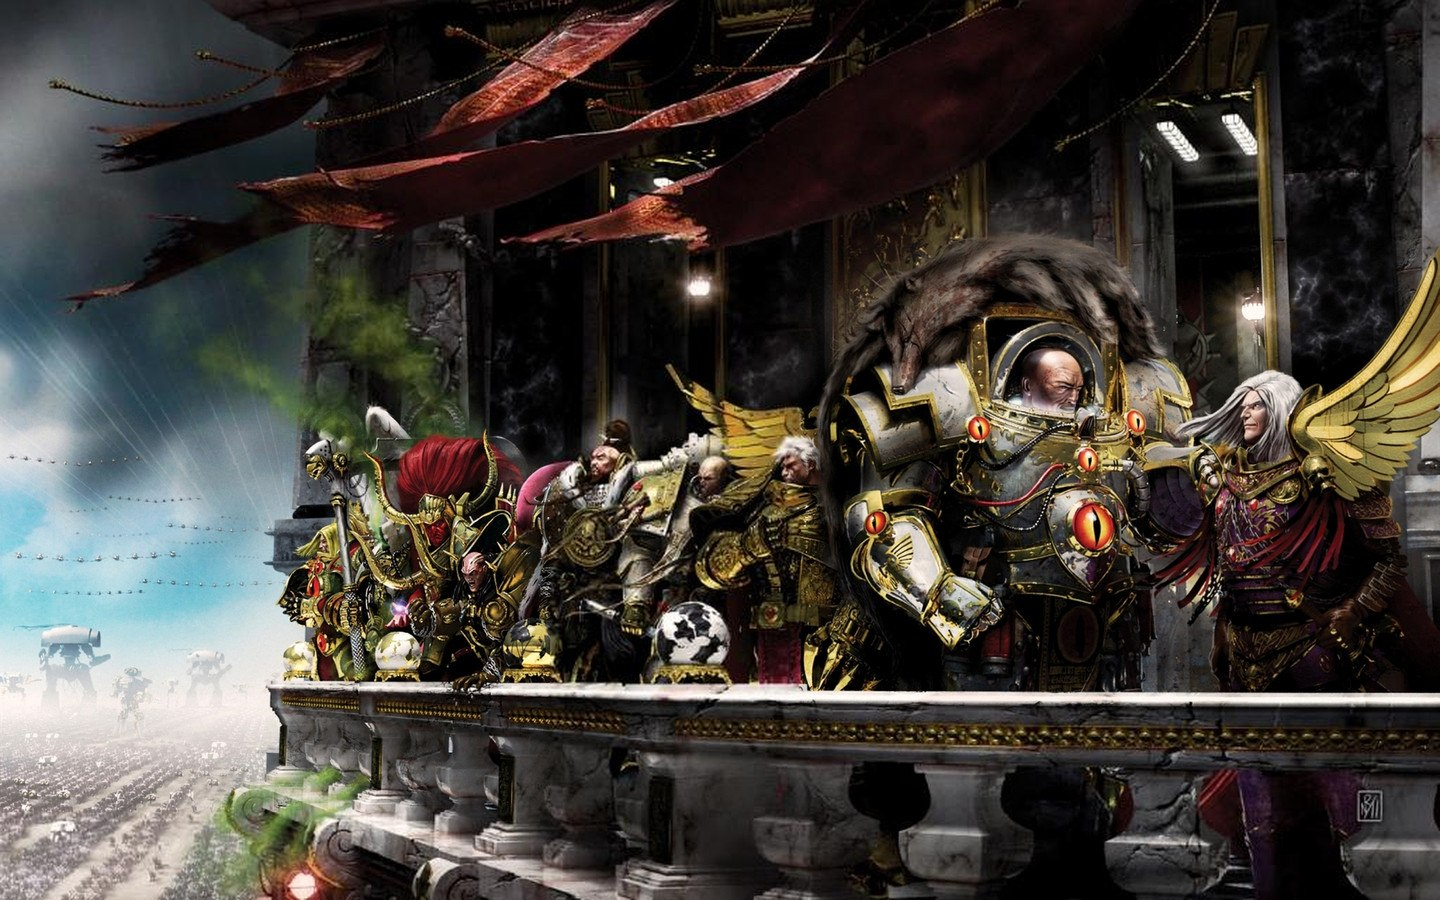 Warhammer 40k wallpaper 1440x900 HQ WALLPAPER   25545 1440x900